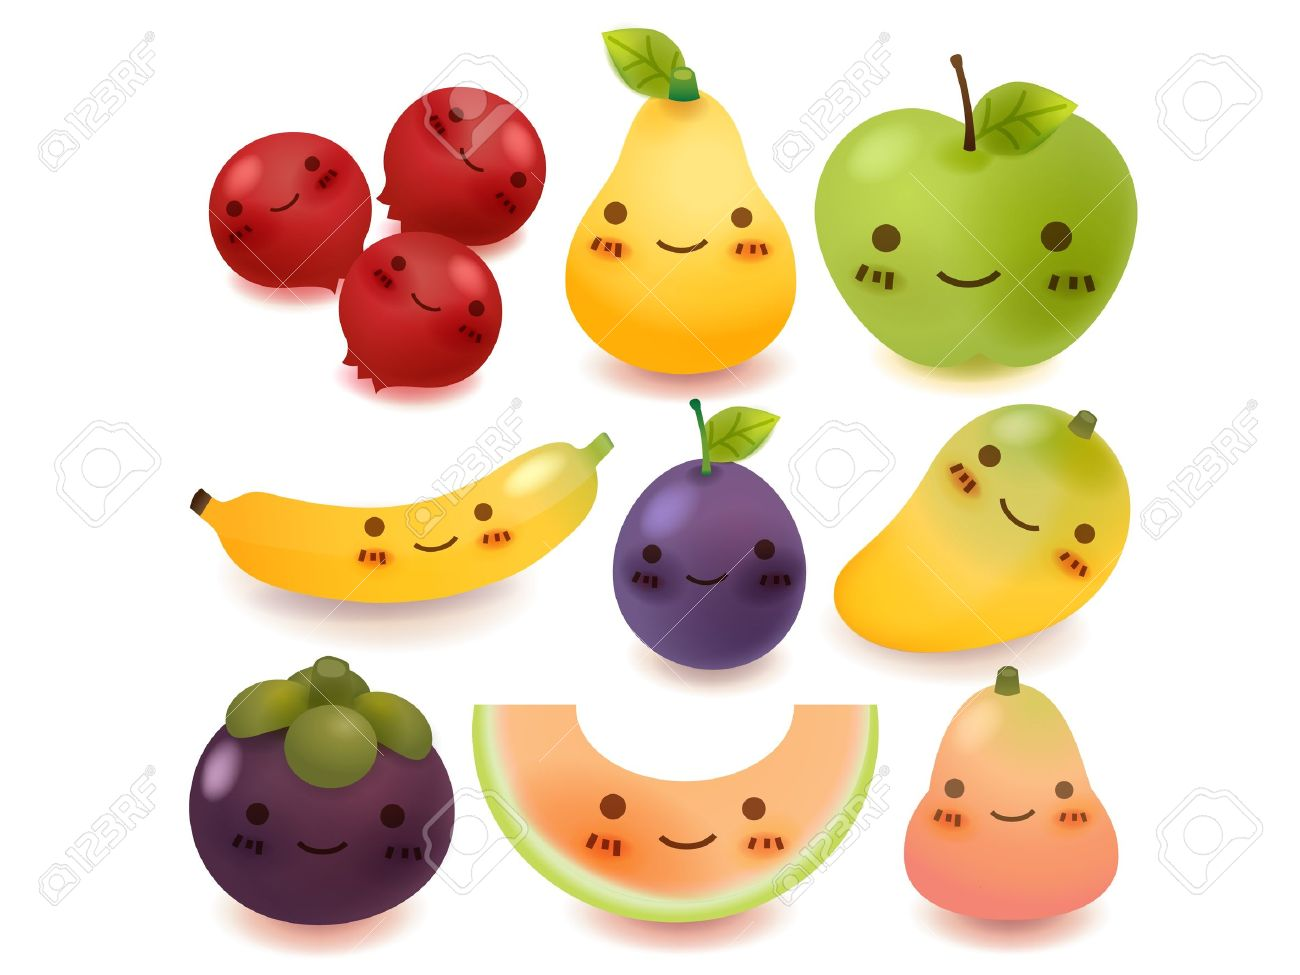 Fresh juice and fruits in hd photos cute babies photos collection - Fruit Cartoon Fruit And Vegetable Collection